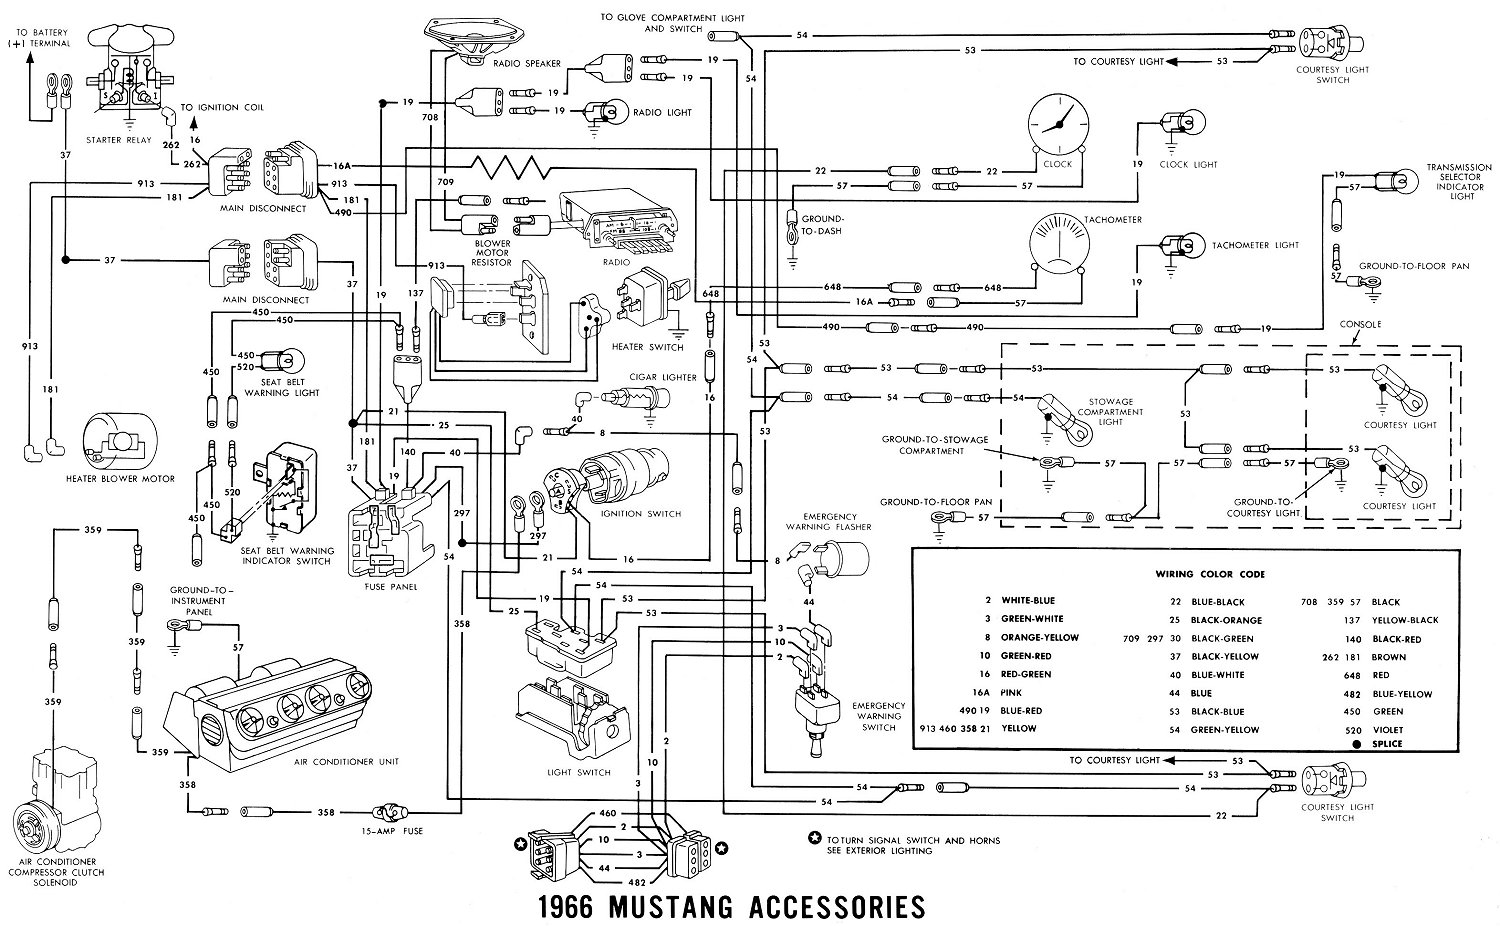 66acces1 1966 mustang wiring diagram 1967 mustang wiring schematic \u2022 wiring 1966 mustang wiring harness kit at readyjetset.co